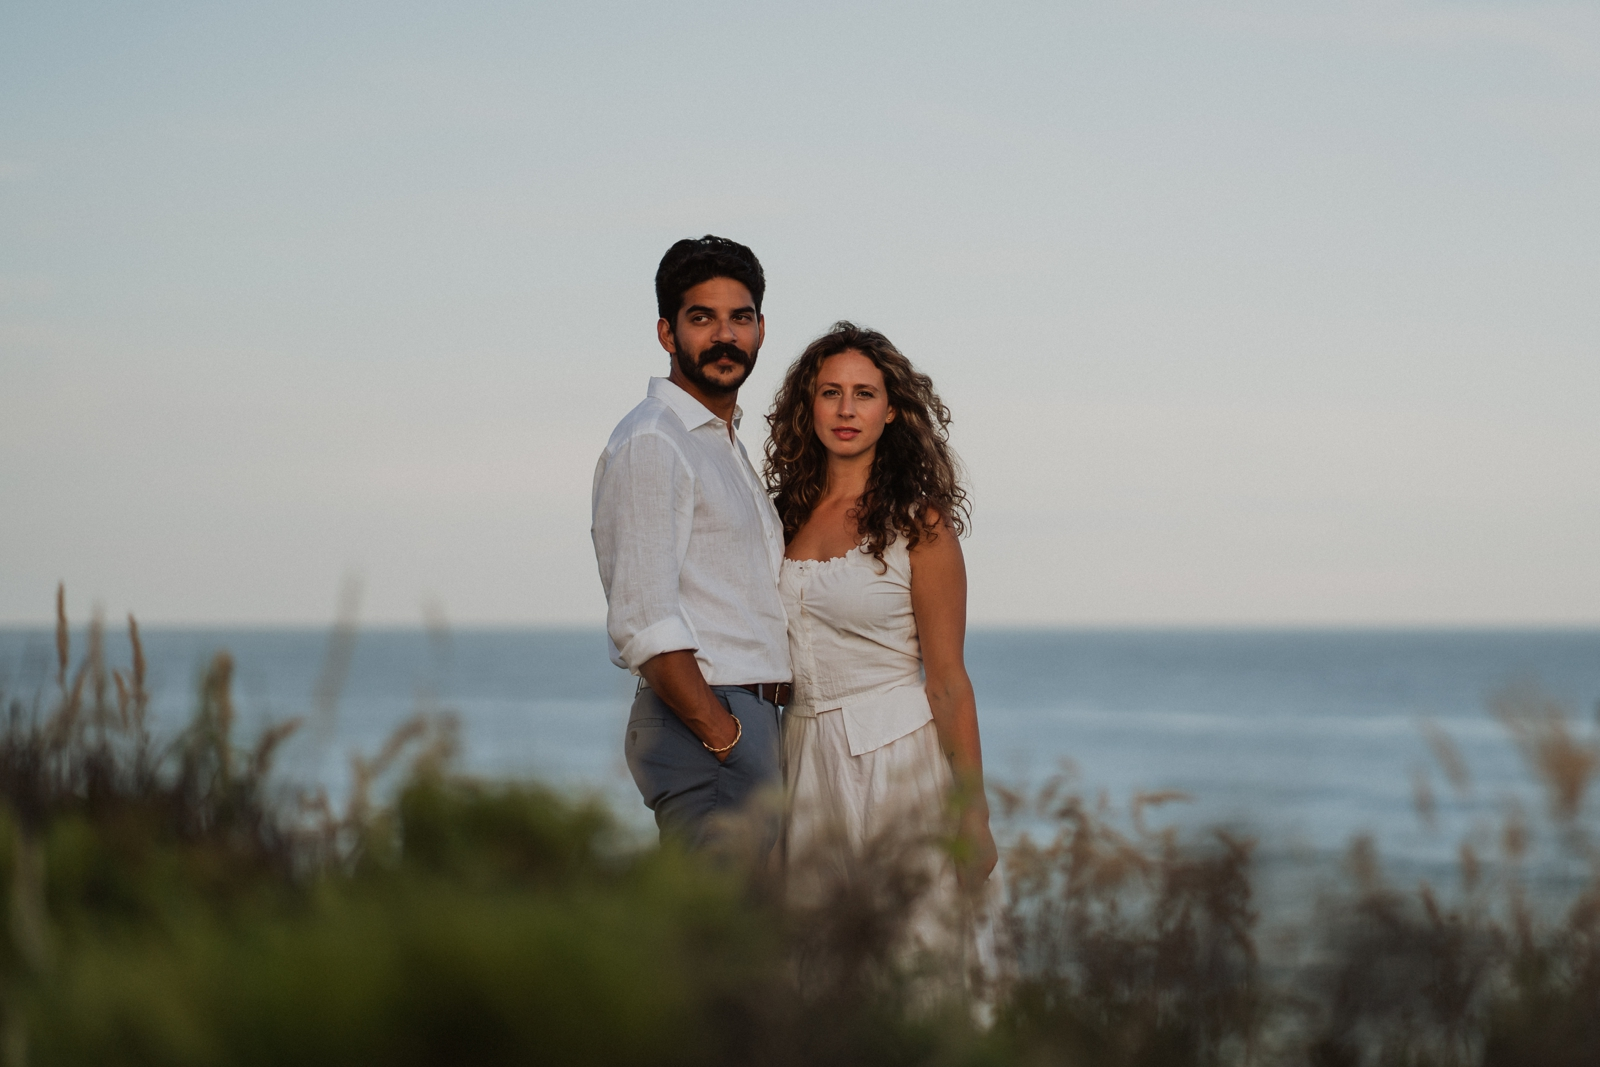 JJP_Nikki & Bud_Shadmoor_Montauk_NY_Cliff Engagement Session63.jpg_blog.jpg